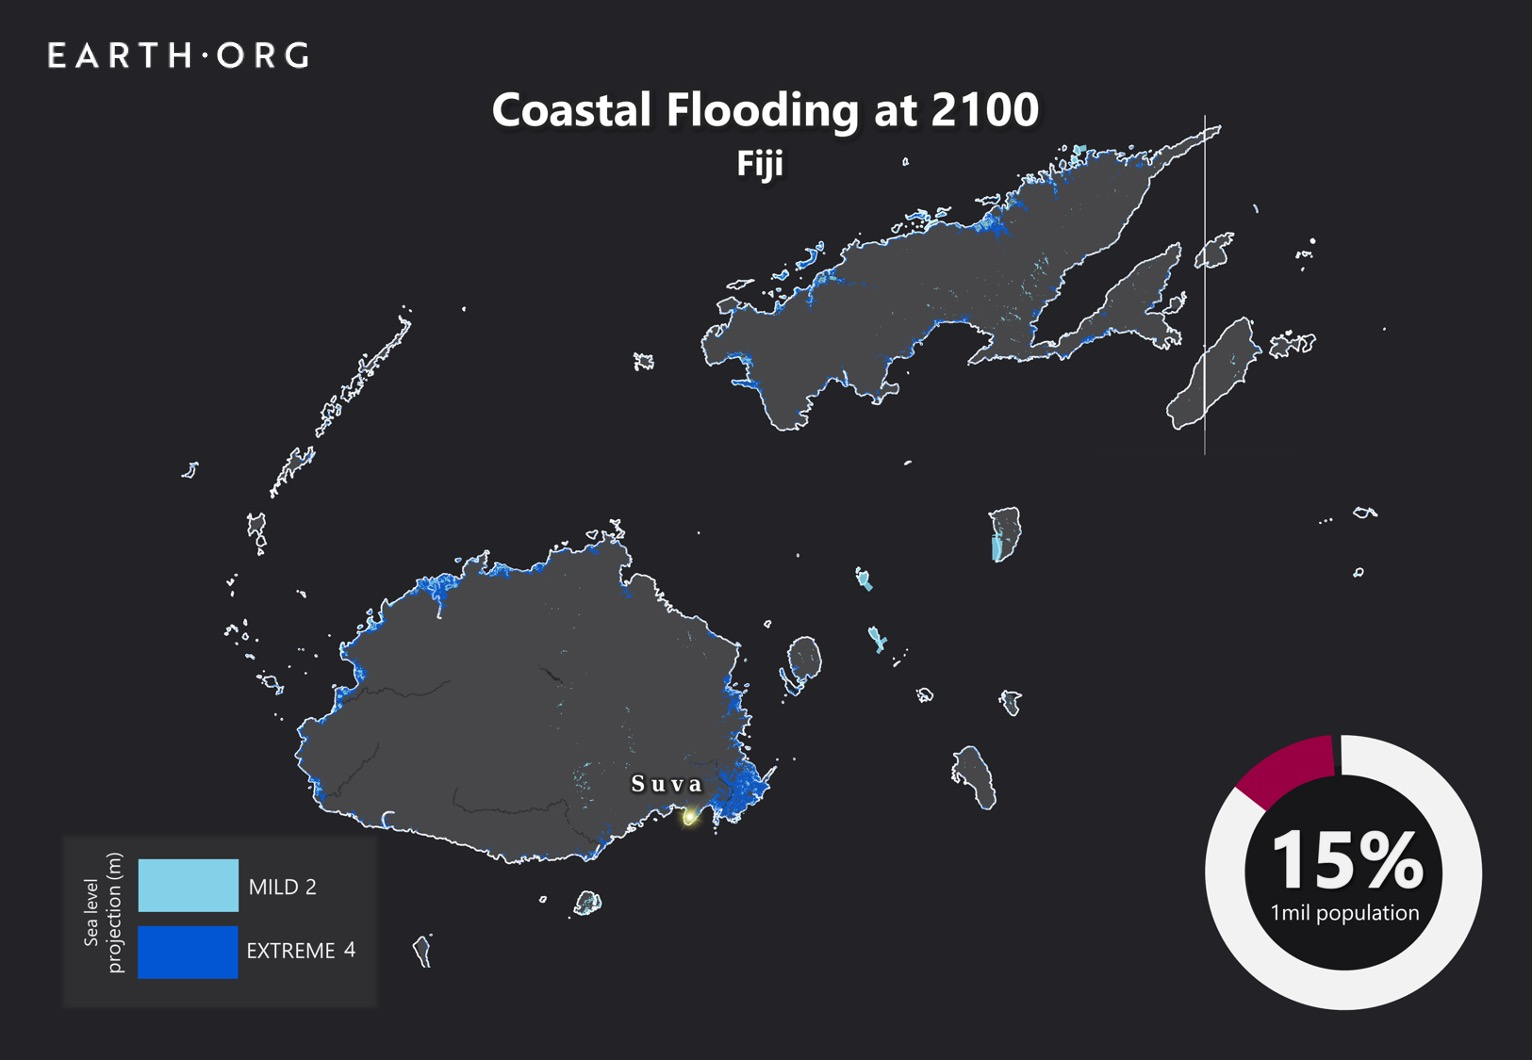 sea level rise by 2100 fiji